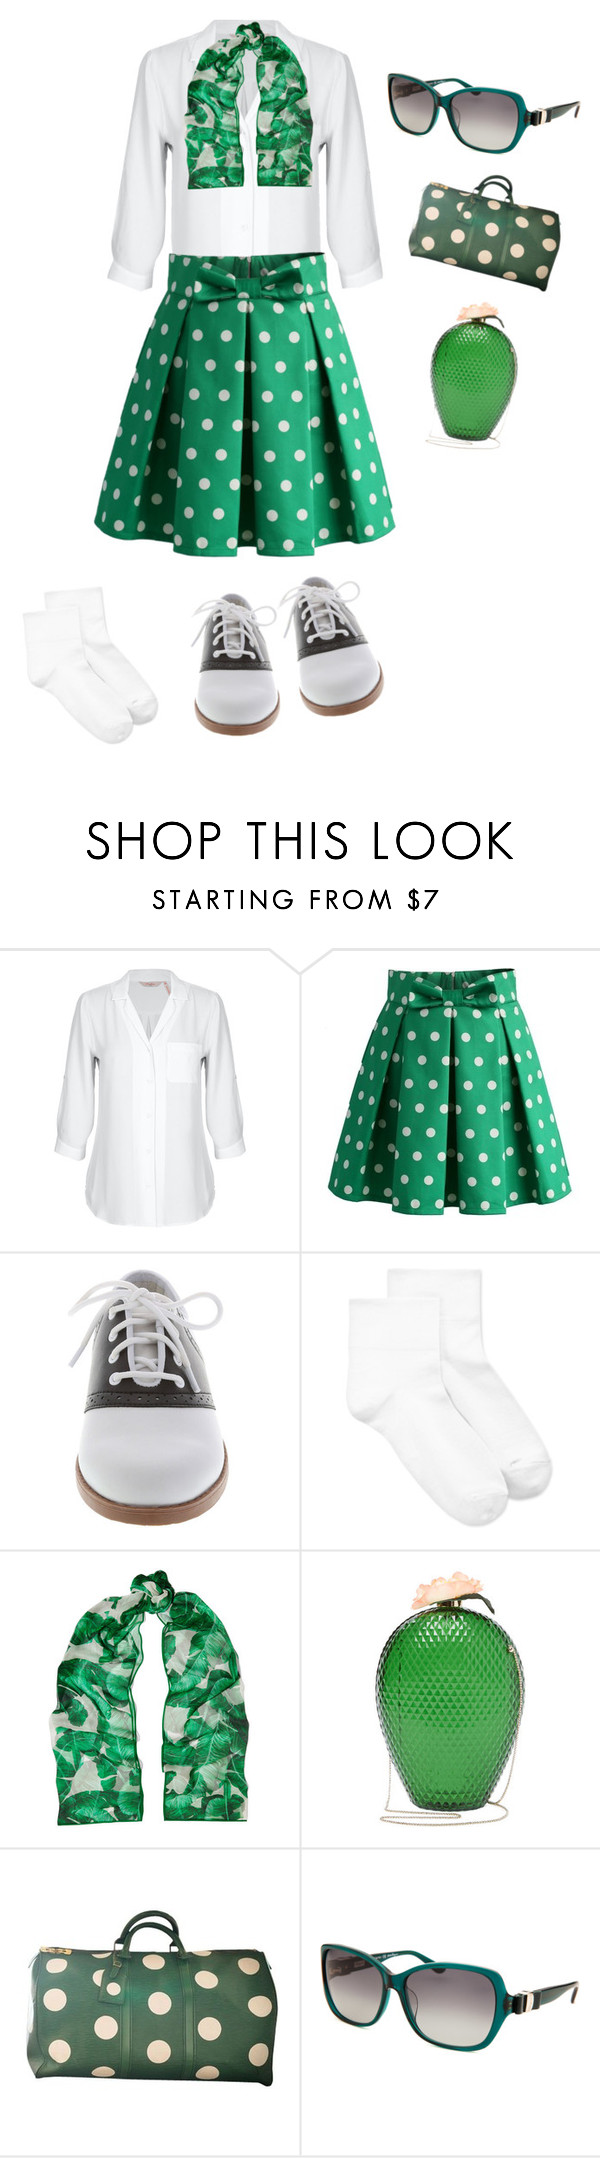 """Untitled #1593"" by sylviabunny ❤ liked on Polyvore featuring Chicwish, Hue, Dolce&Gabbana, Charlotte Olympia, Louis Vuitton and Salvatore Ferragamo"